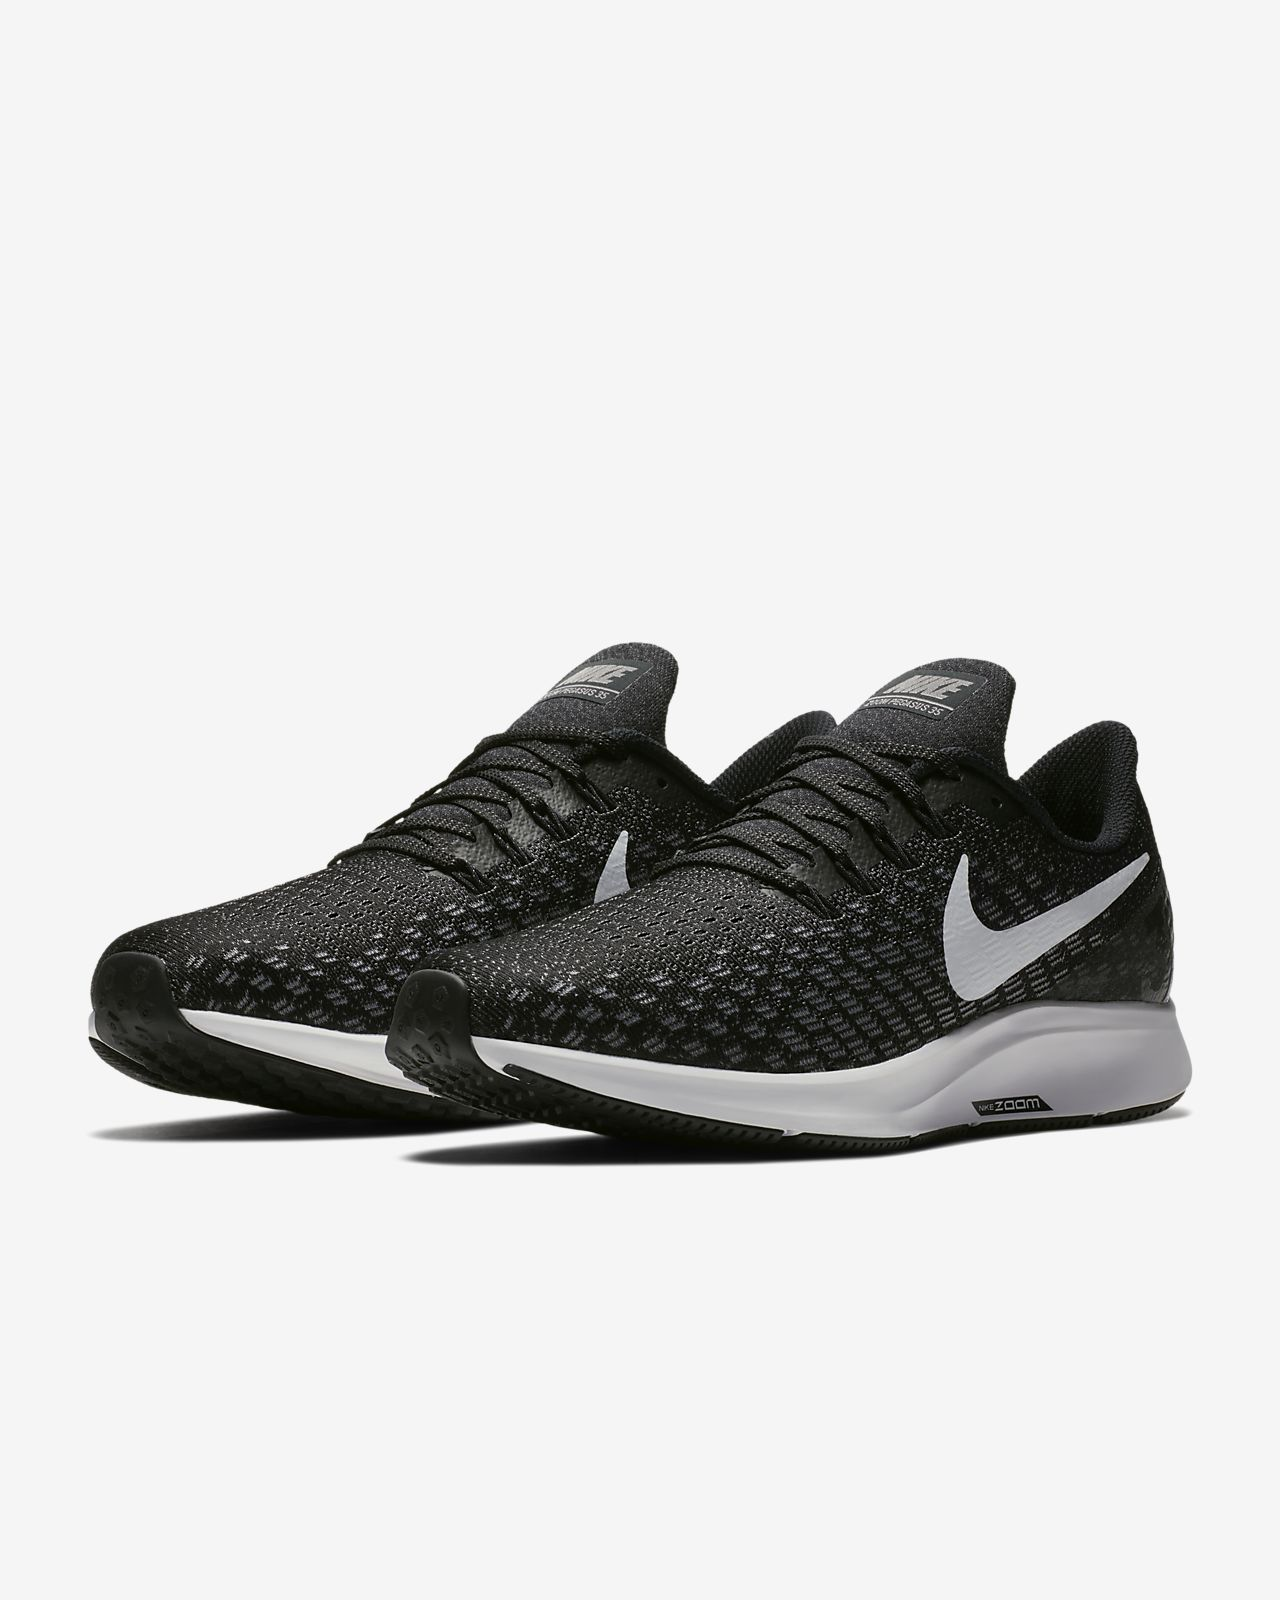 4135ebac43ee5 Nike Air Zoom Pegasus 35 Men s Running Shoe. Nike.com